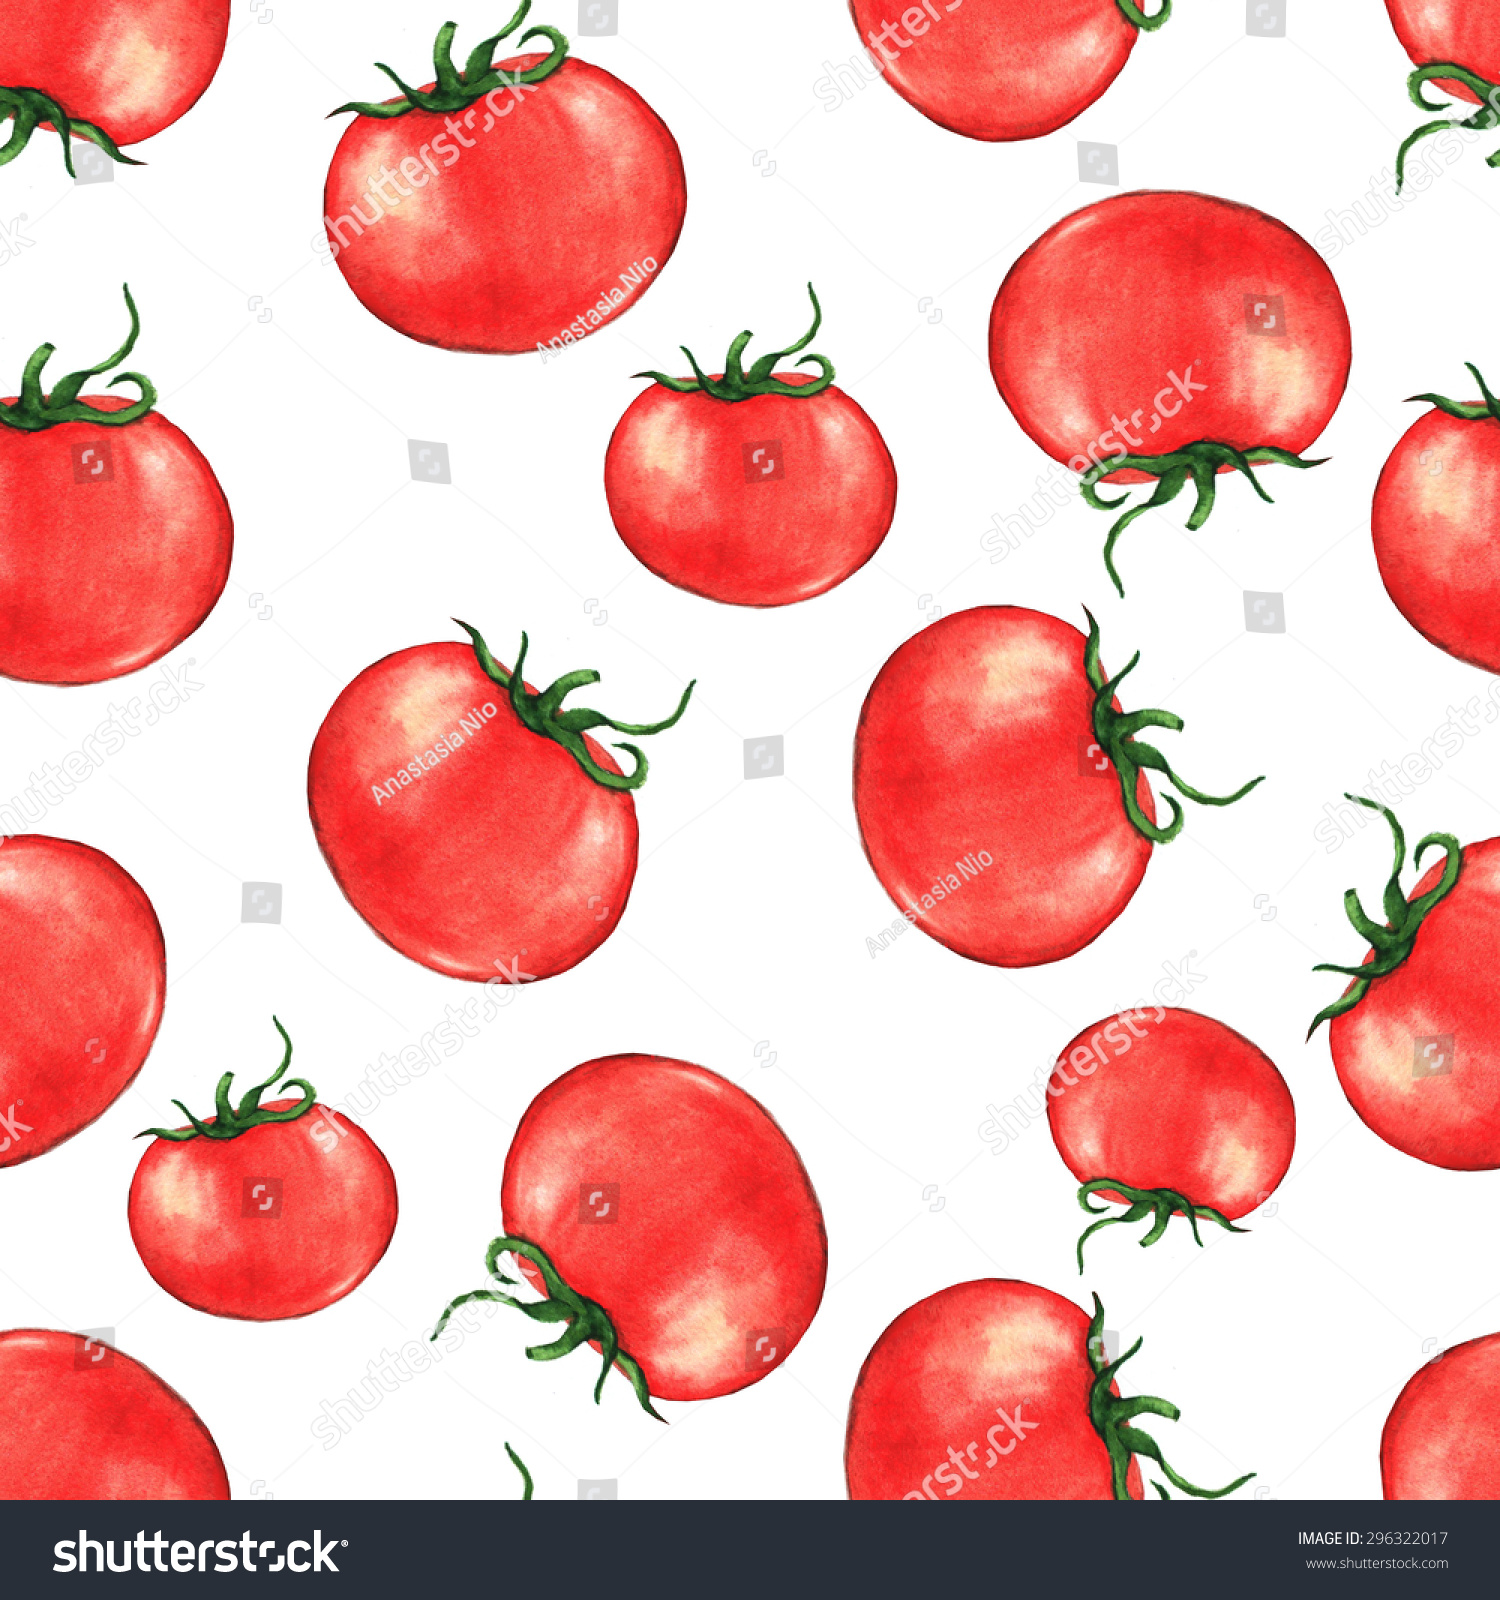 Hand drawn seamless repeated pattern with watercolor ripe red tomatoes on the white background in vector